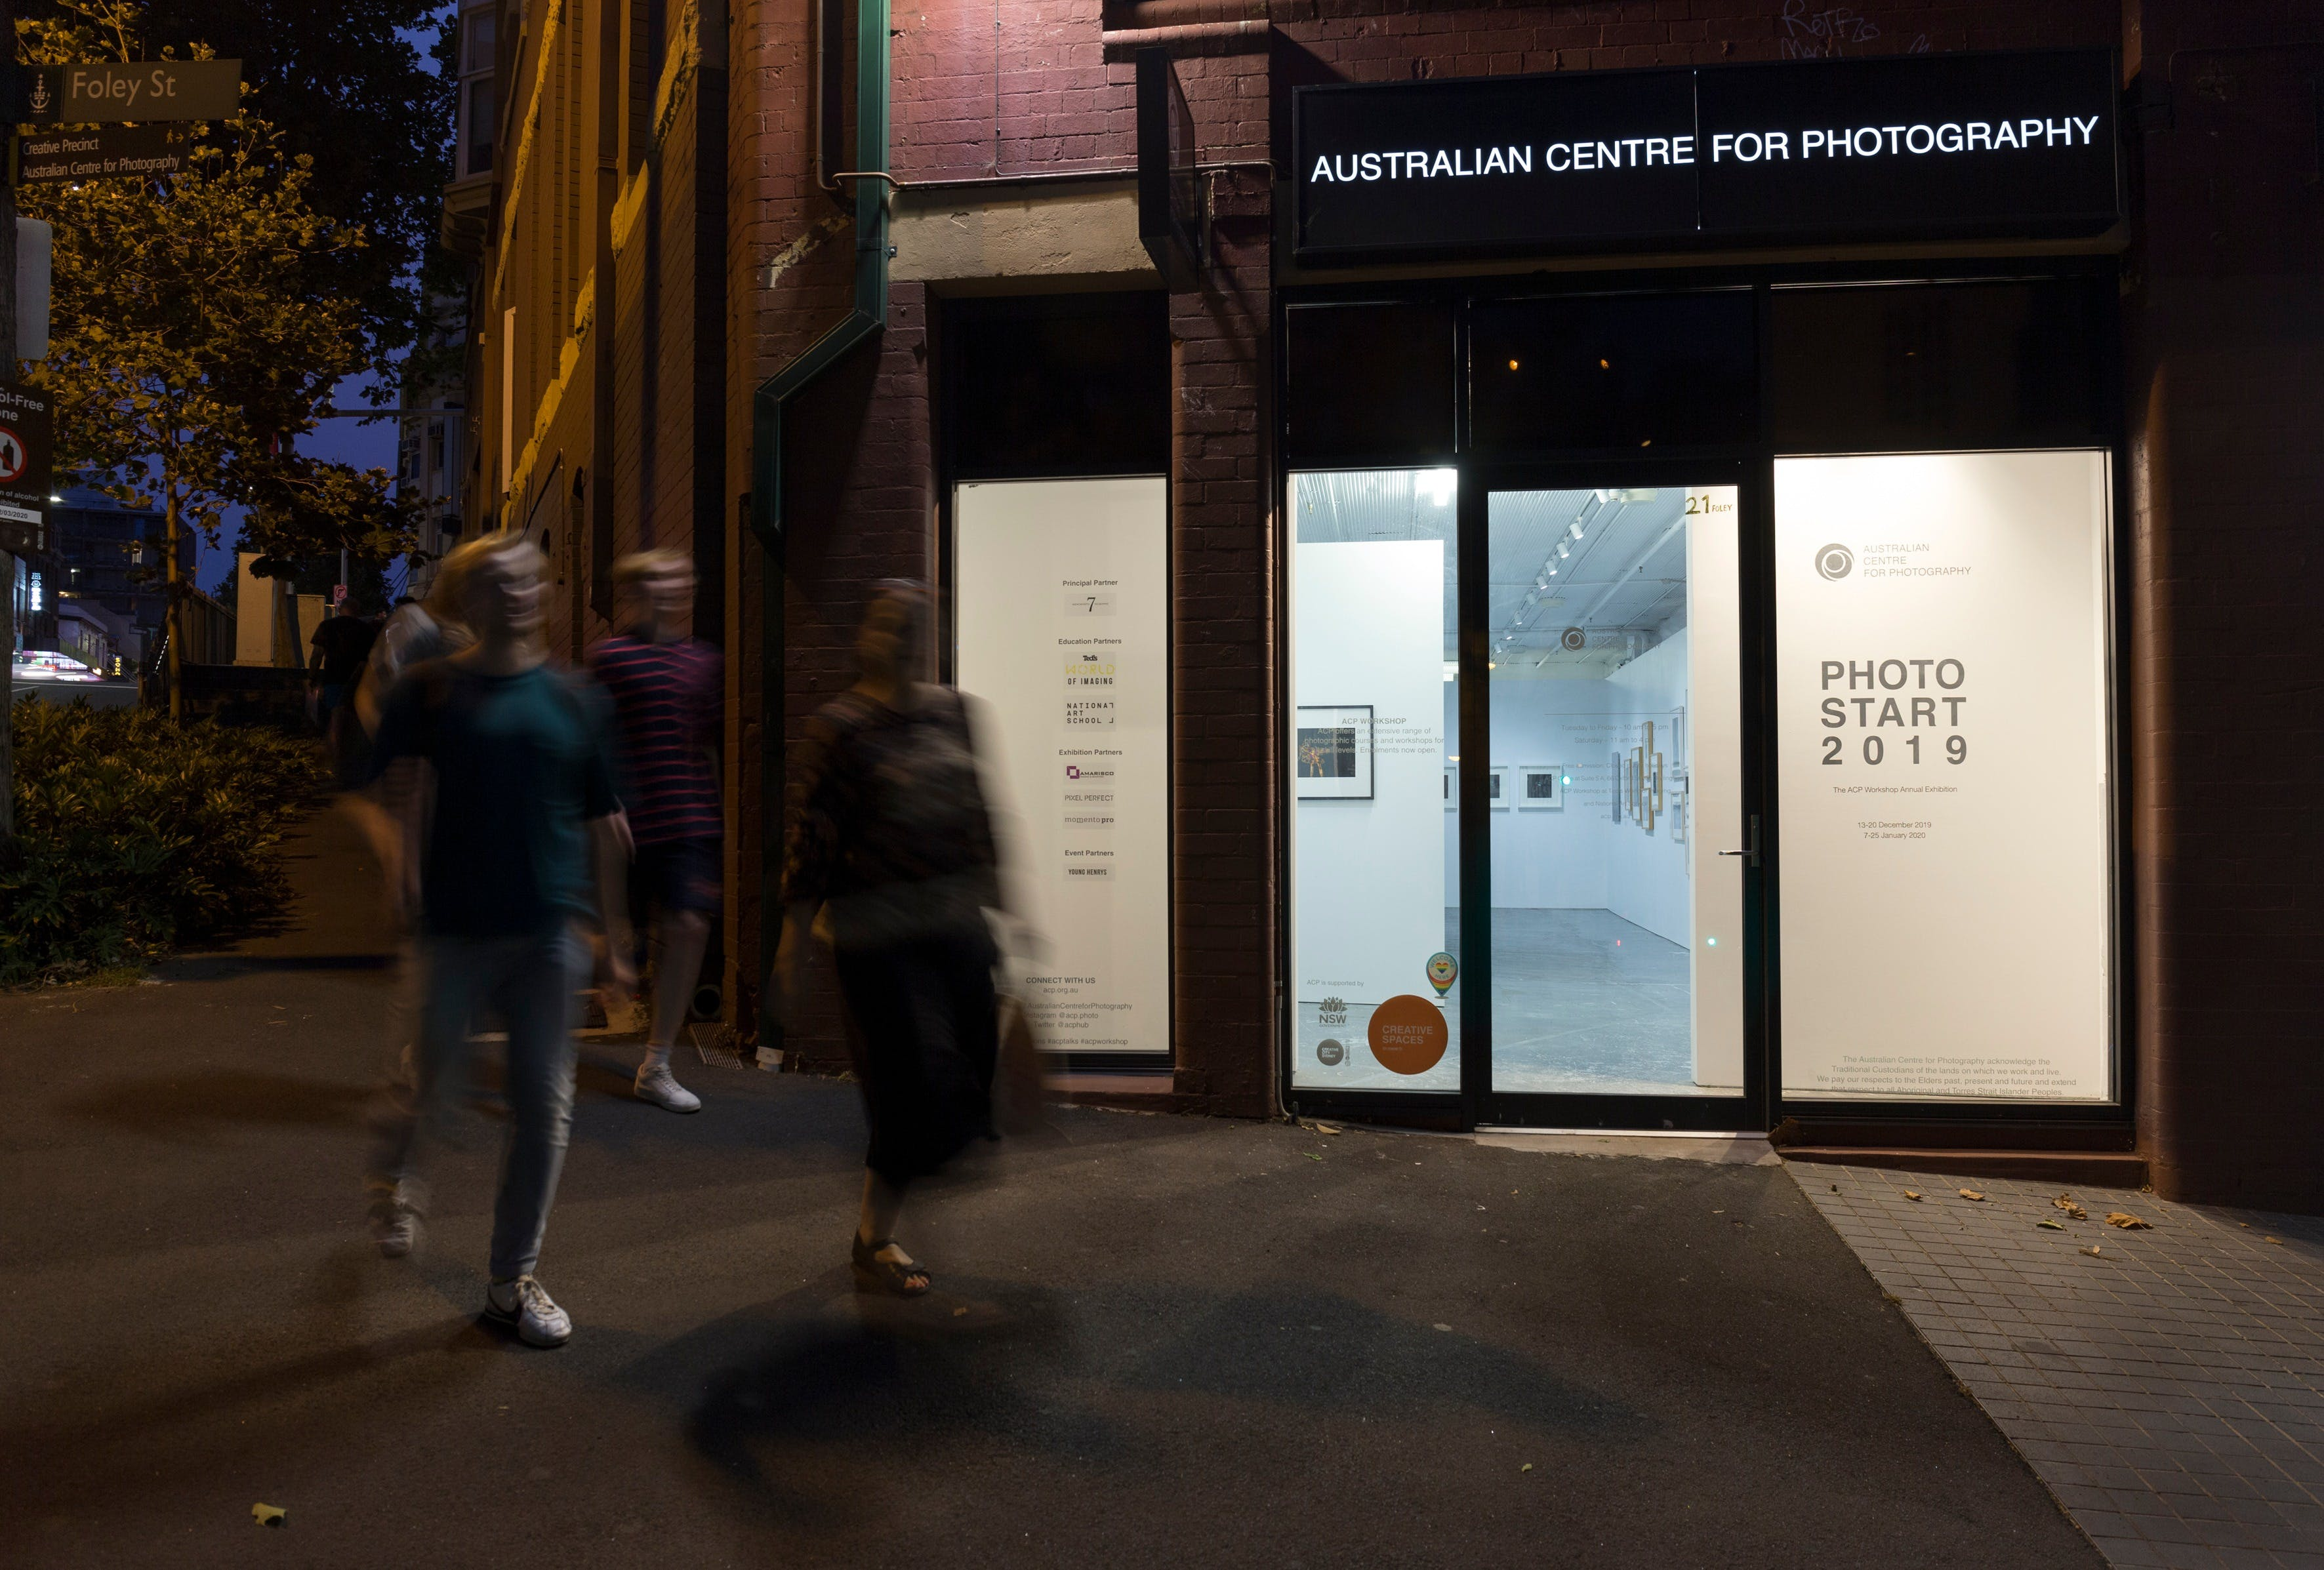 Australian Centre for Photography - Accommodation Melbourne